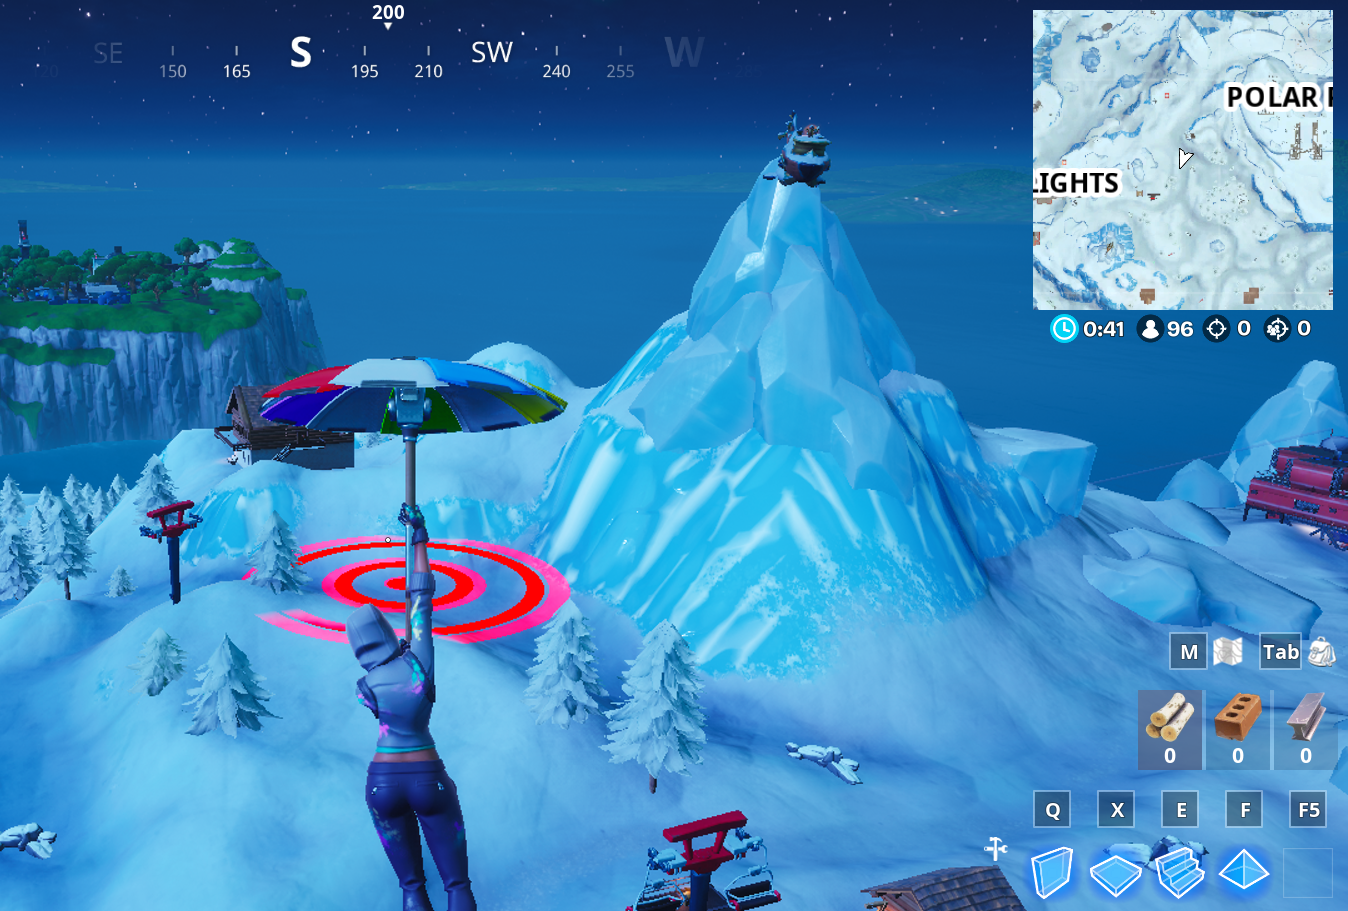 A Fortnite player glides toward a bullseye mission objective